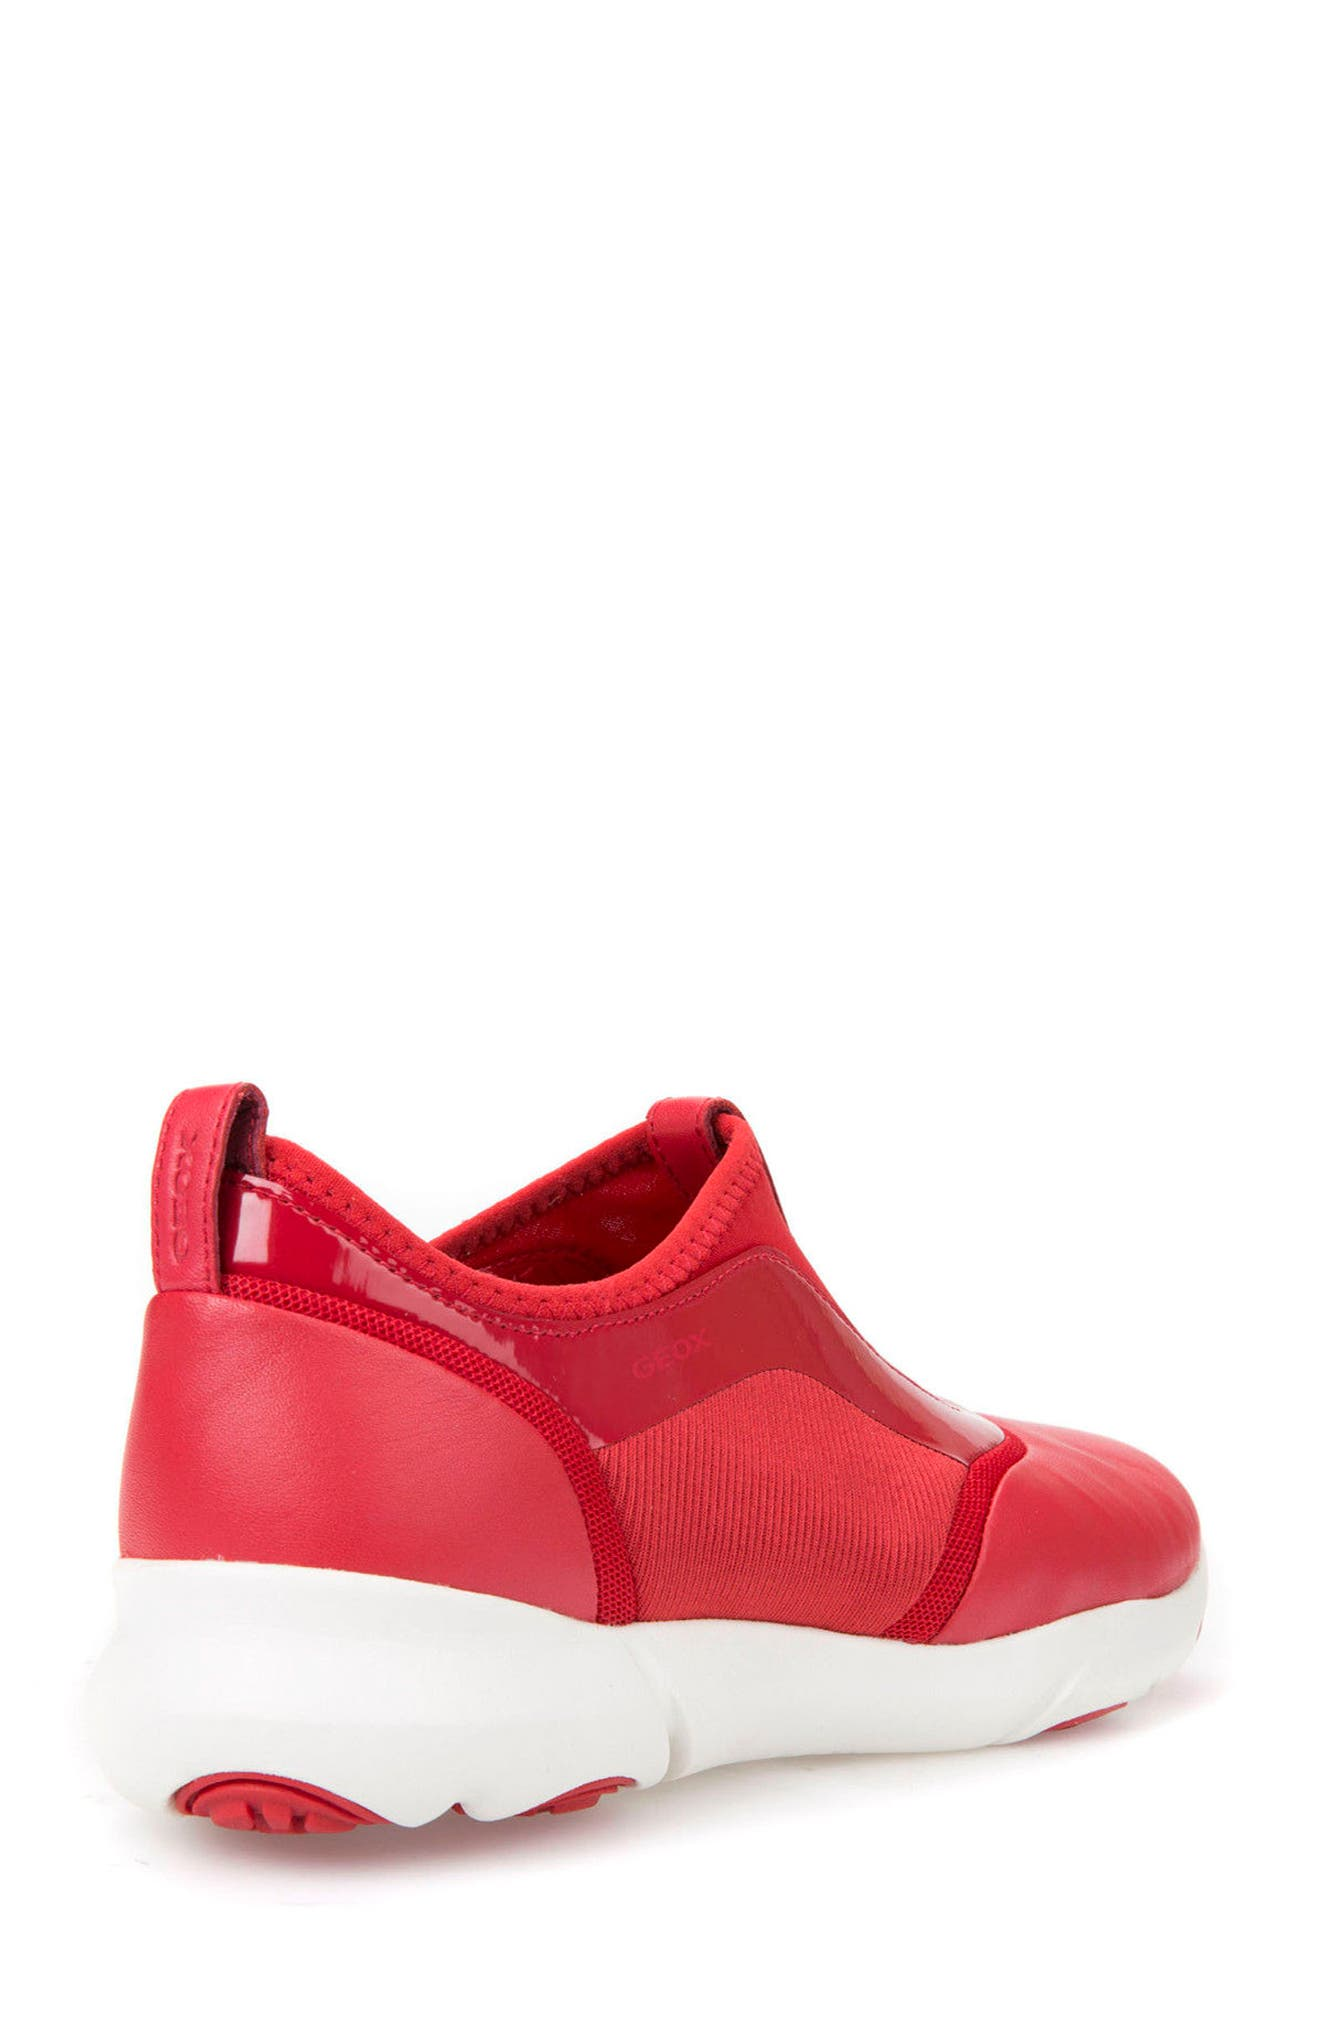 Nebula S Slip-On Sneaker,                             Alternate thumbnail 2, color,                             Red Leather